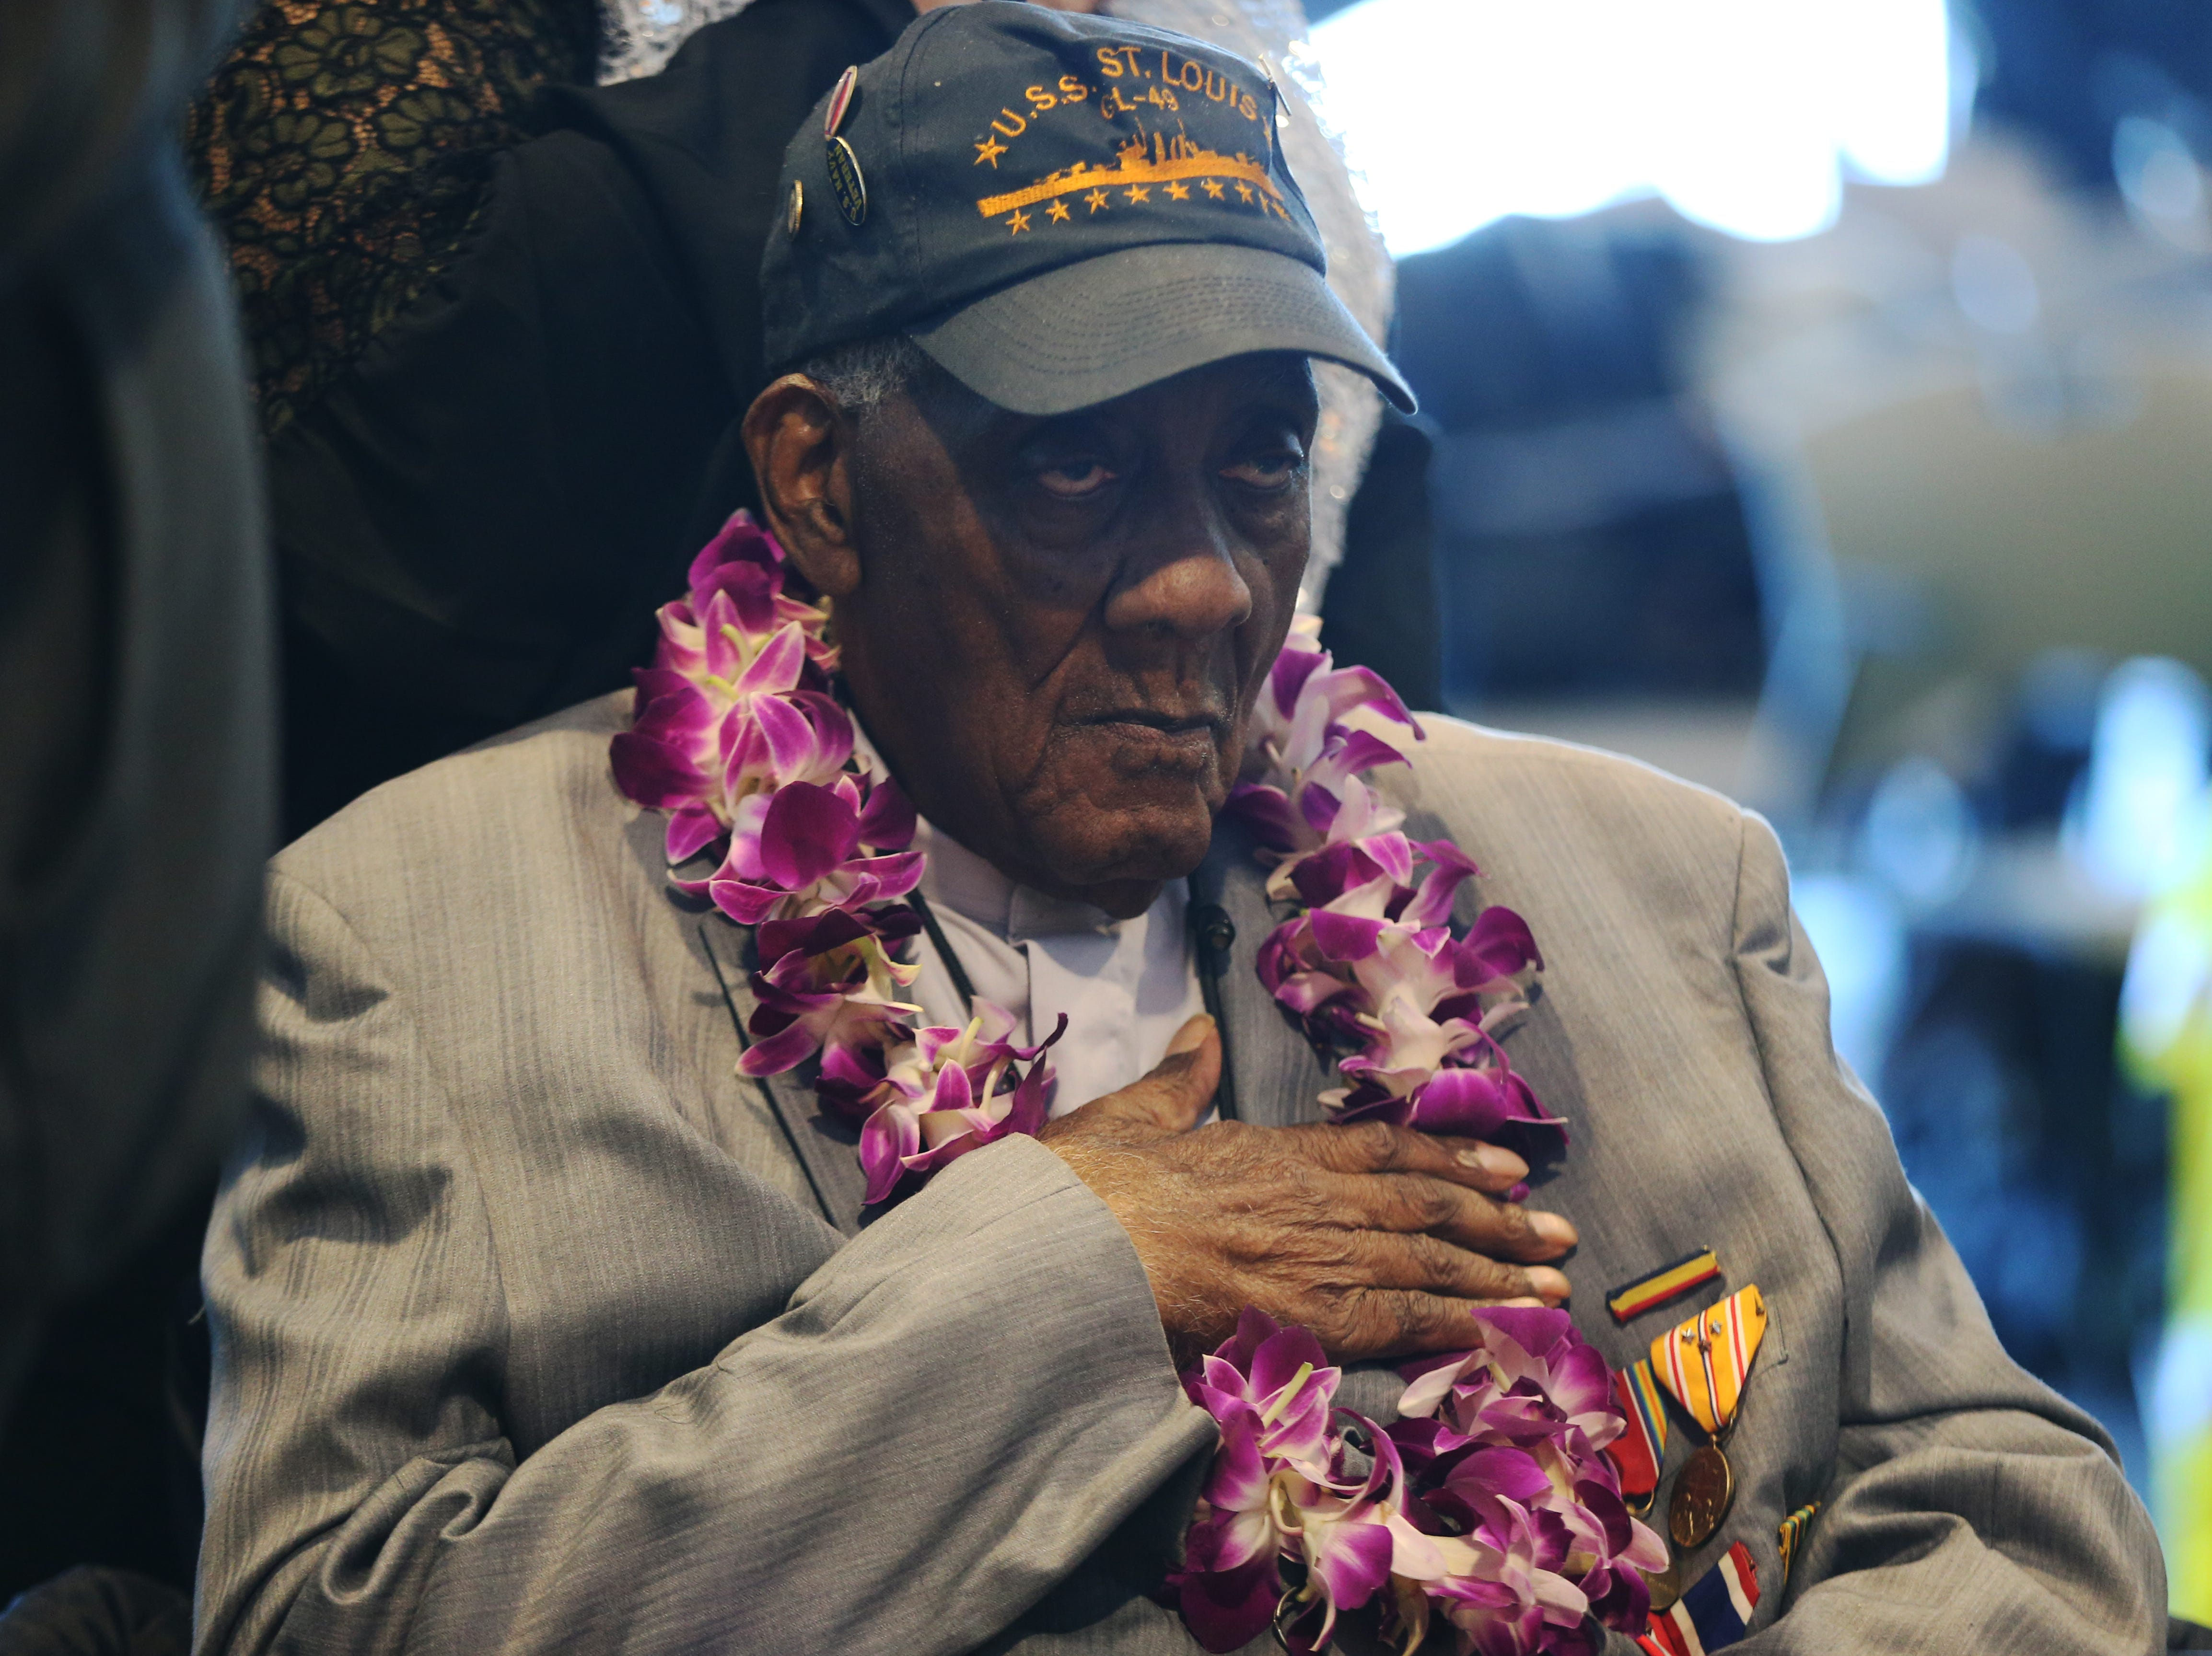 Local Pearl Harbor Reverend James Blakely, 99, attends an event on the USS Intrepid to mark the 77th Anniversary of the attack on Pearl Harbor on December 07, 2018 in New York City.